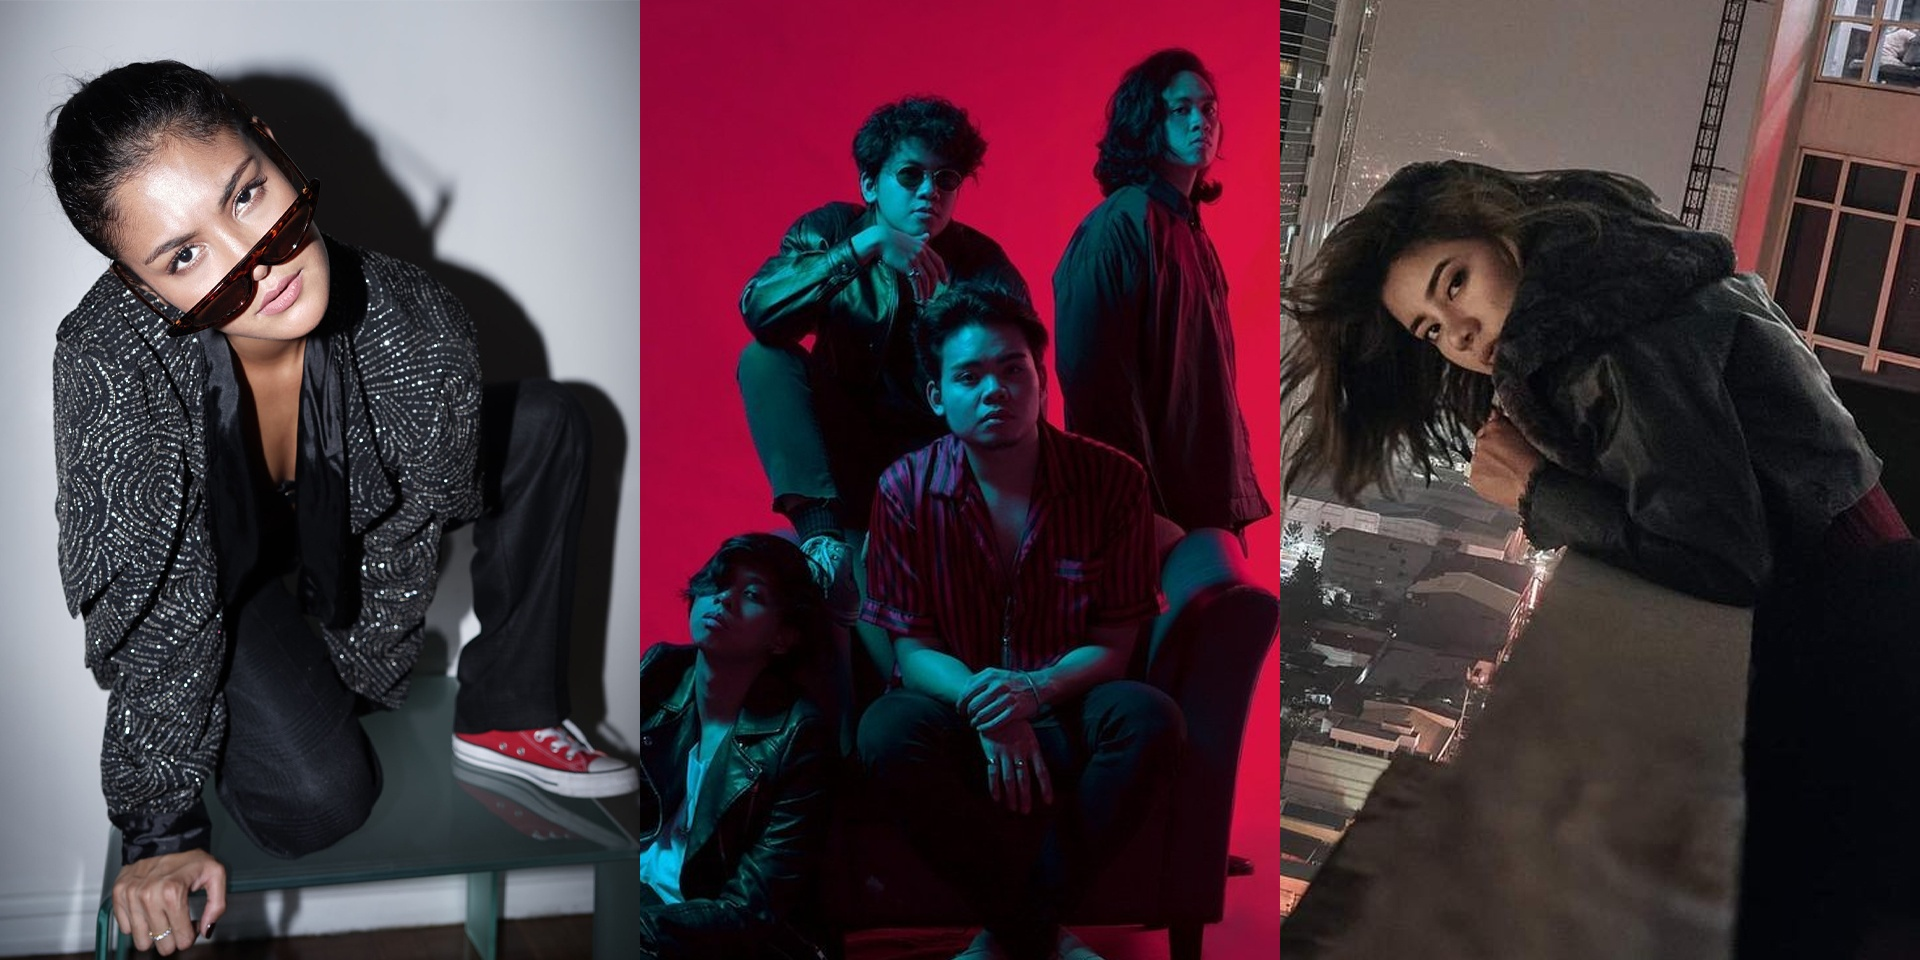 Keiko Necesario, One Click Straight, Kiana Valenciano, Itchyworms, and Quest to perform at Music Matters in Singapore